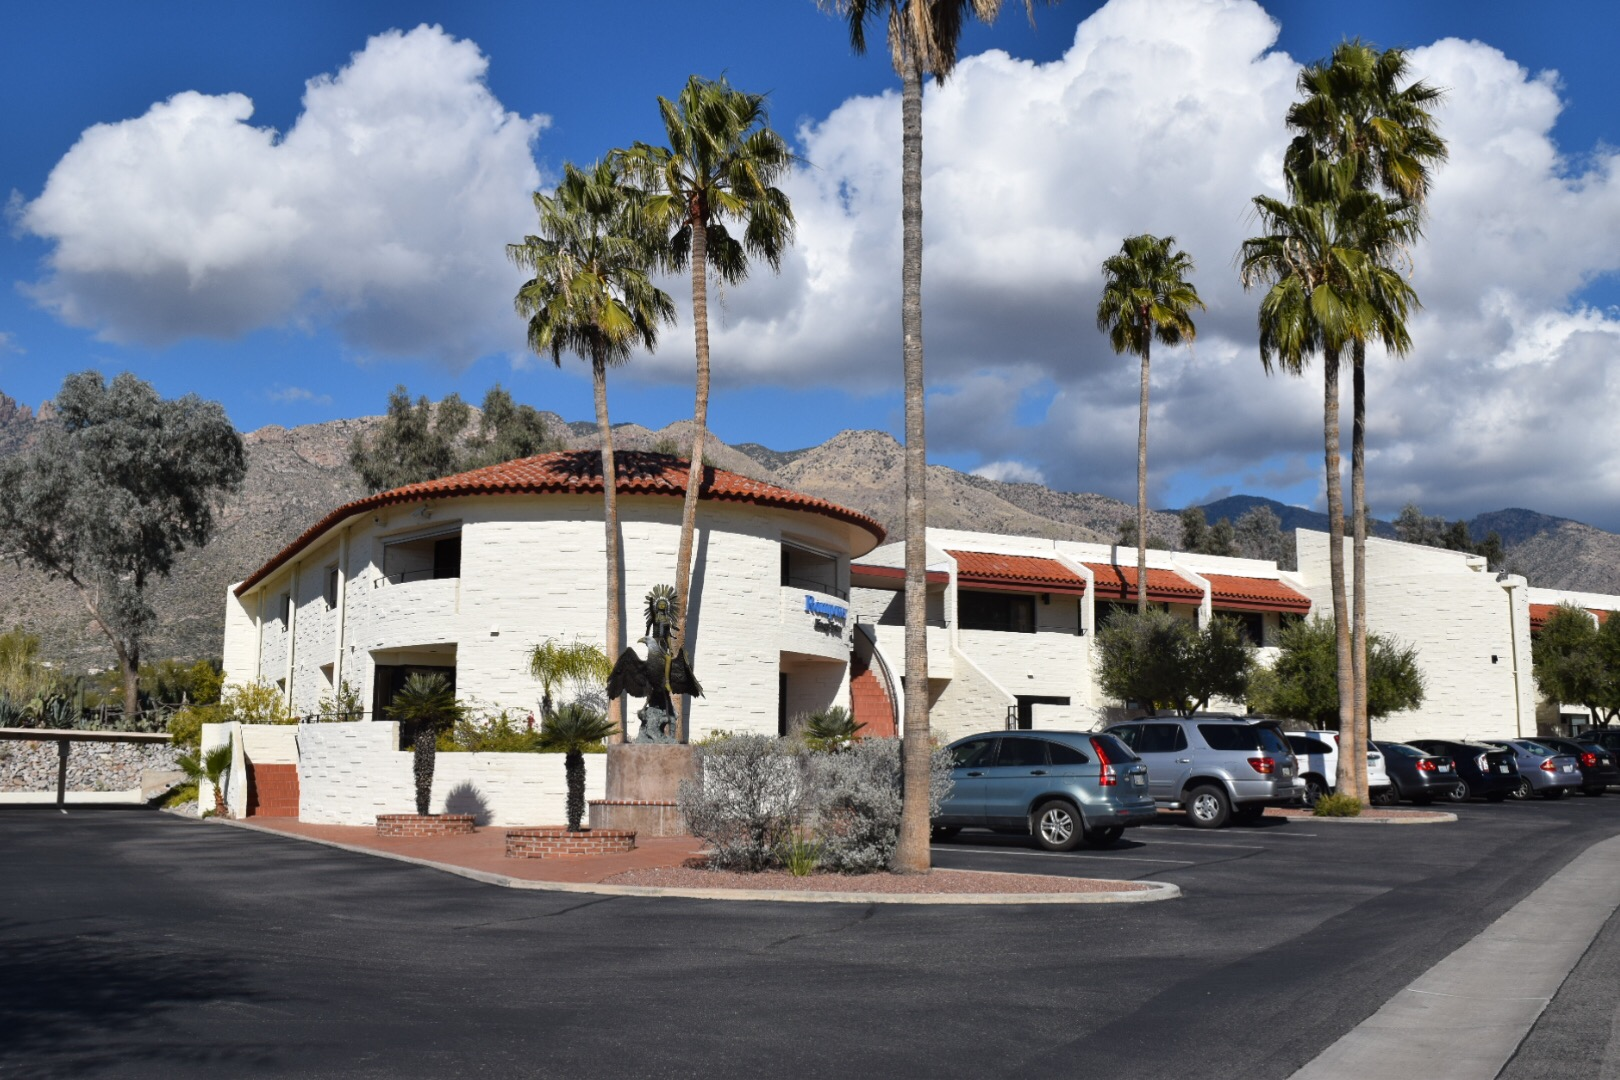 Tucson psychiatry practice exterior building and parking lot